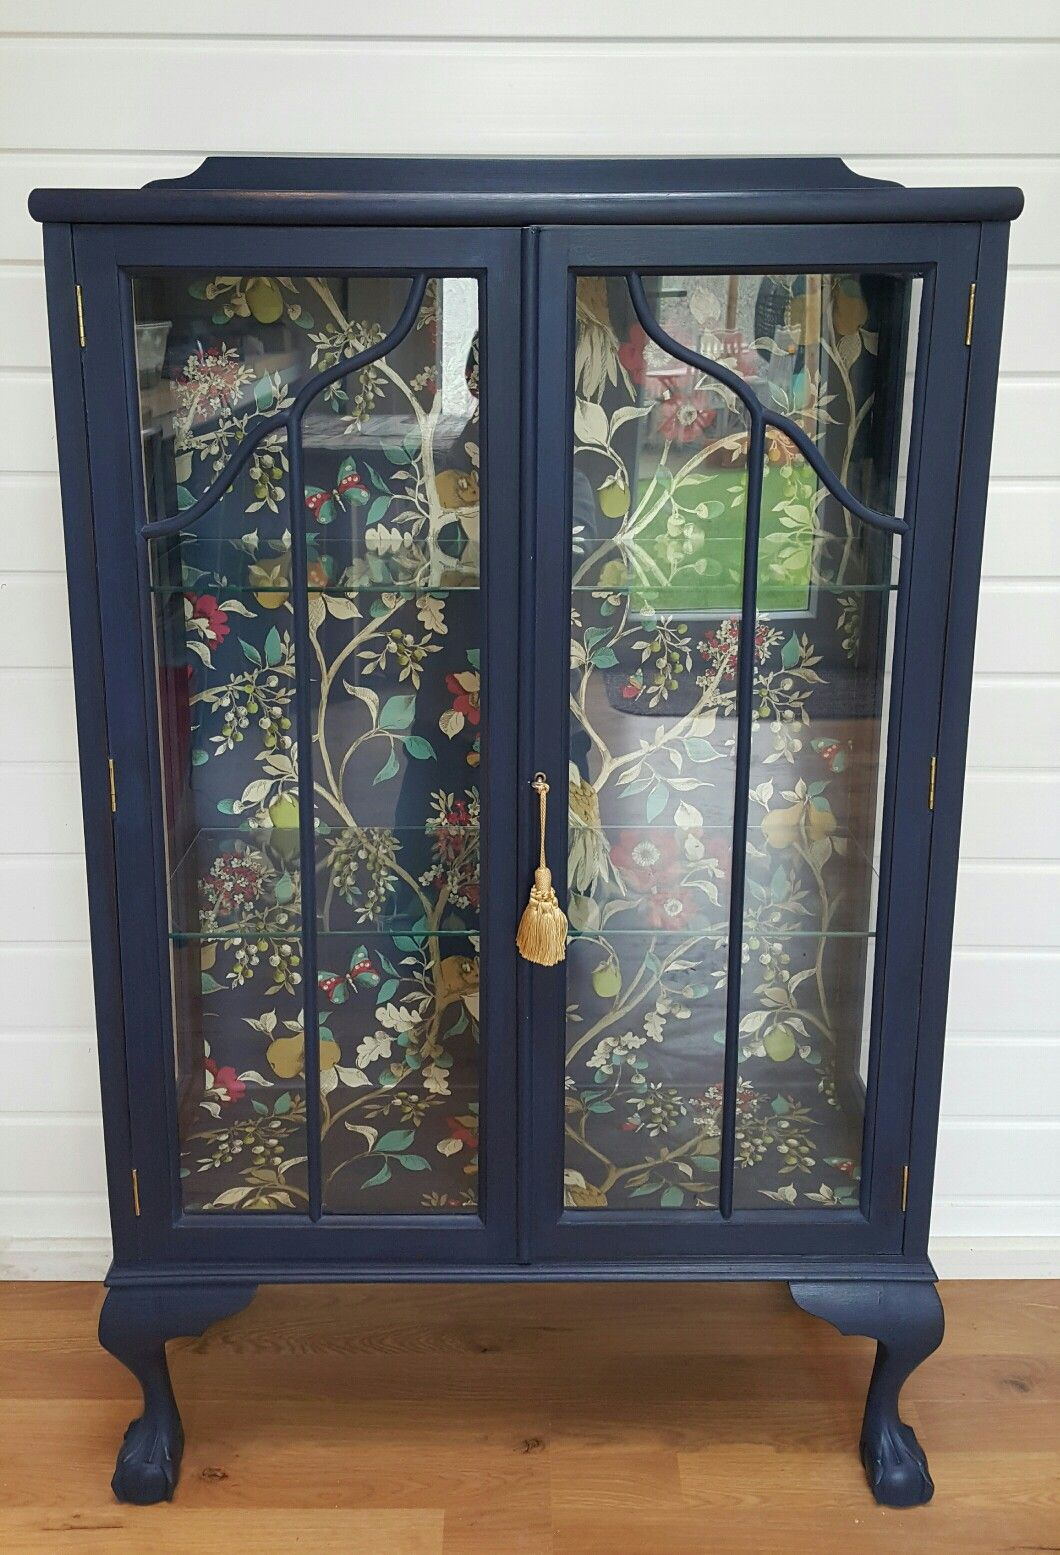 Stunning vintage display cabinet in Frenchic Hornblower with